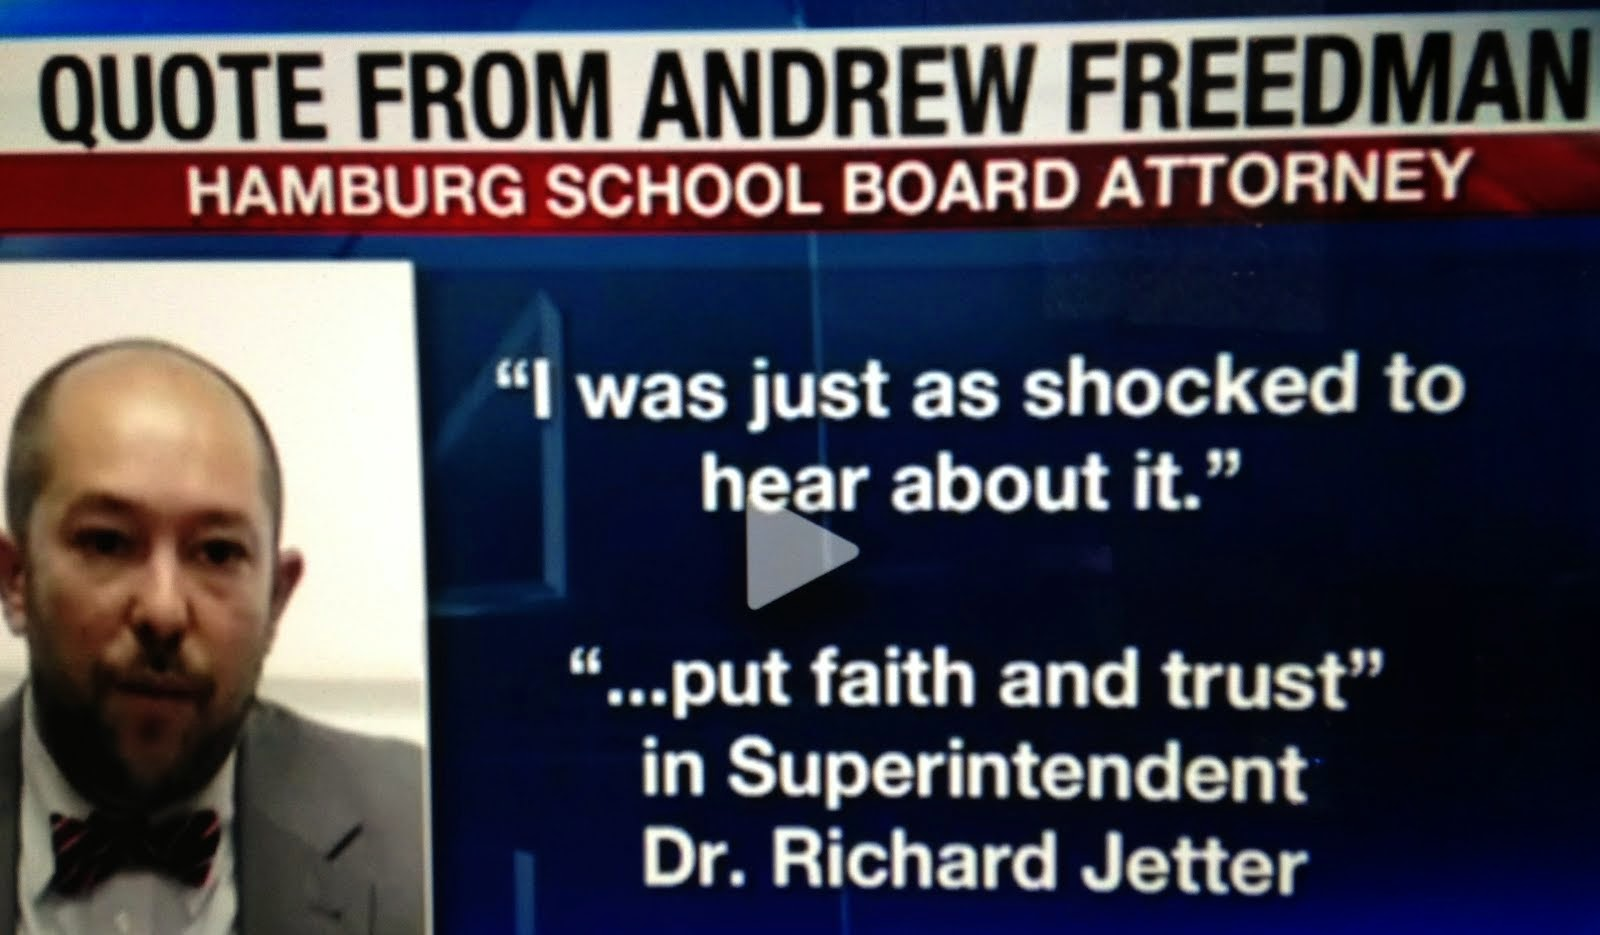 Hamburg School Attorney Andrew Freedman